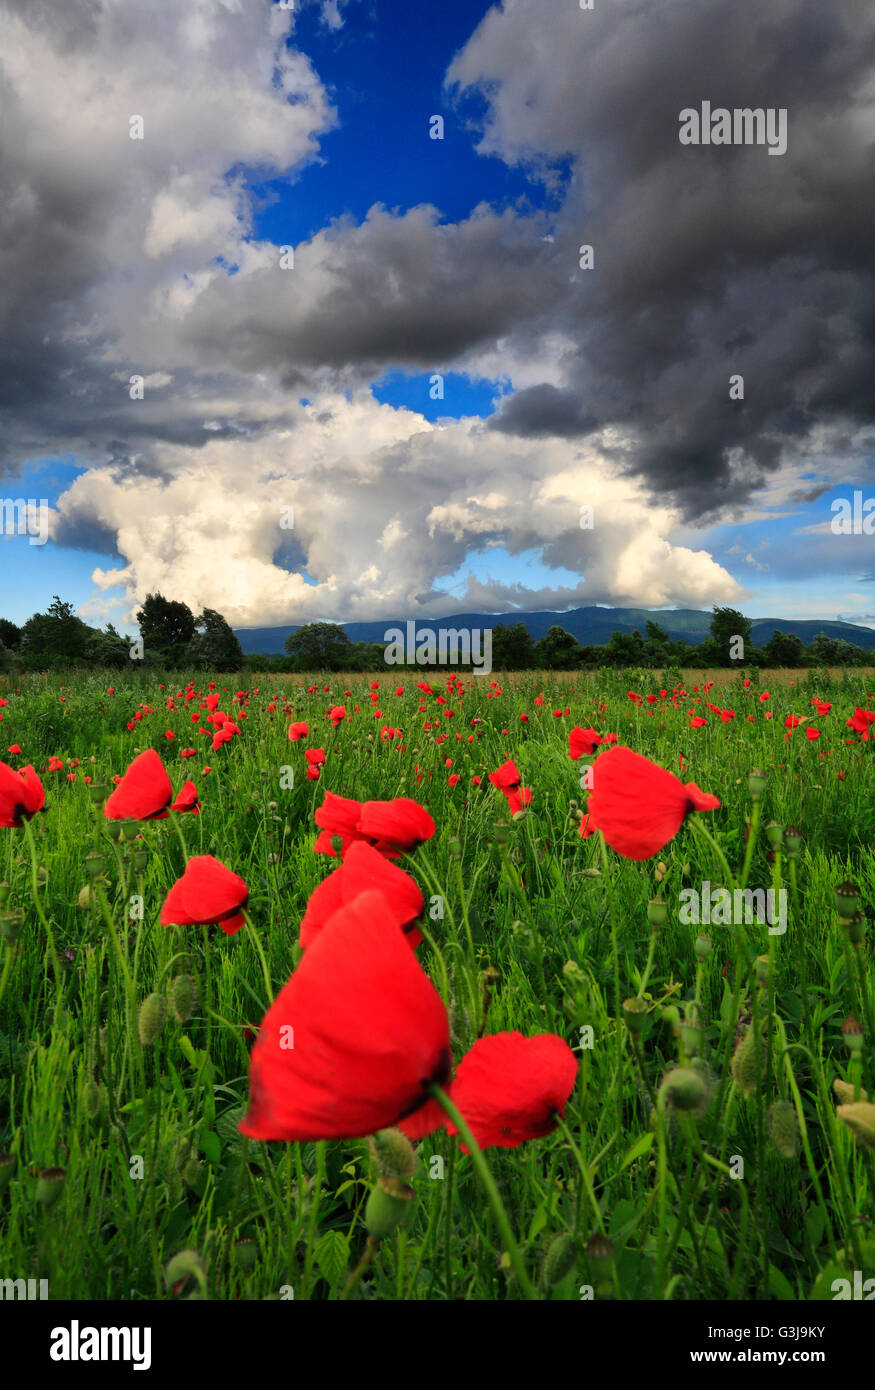 Poppy flowers and stormy clouds - Stock Image